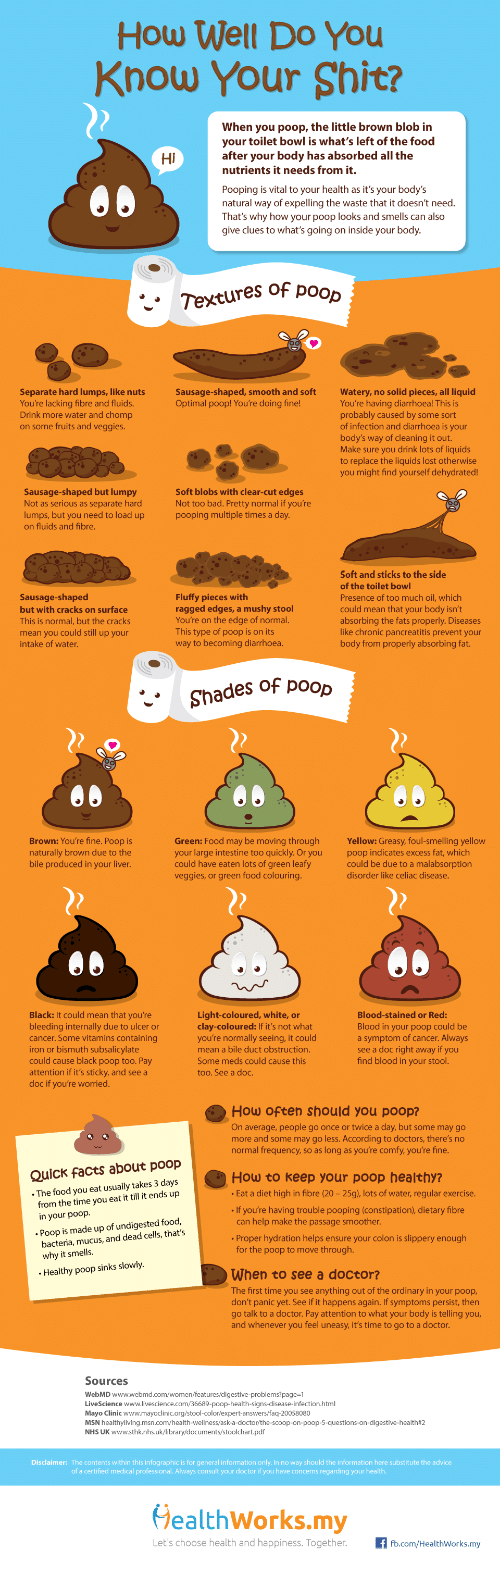 Food To Eat To Make Your Poop Solid